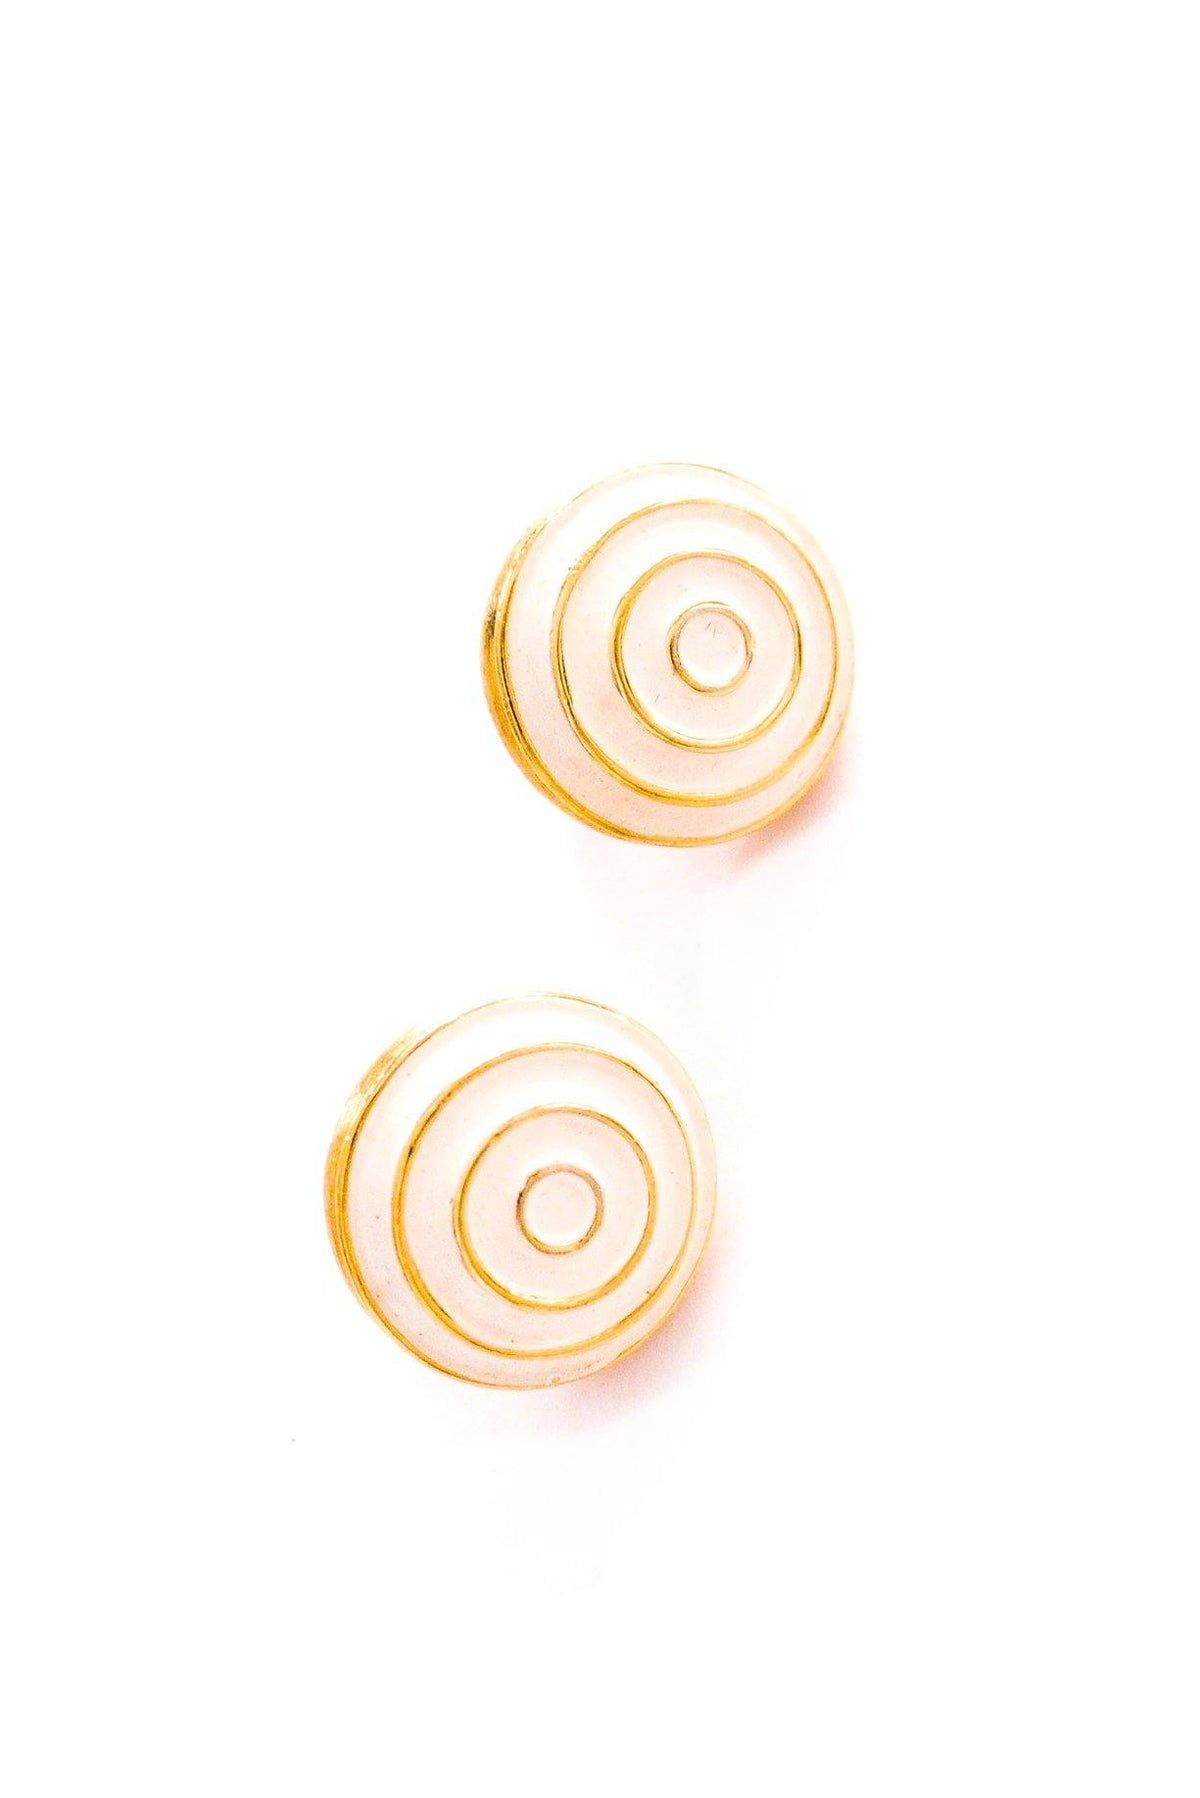 Vintage Citation cream swirl statement earrings from Sweet & Spark.